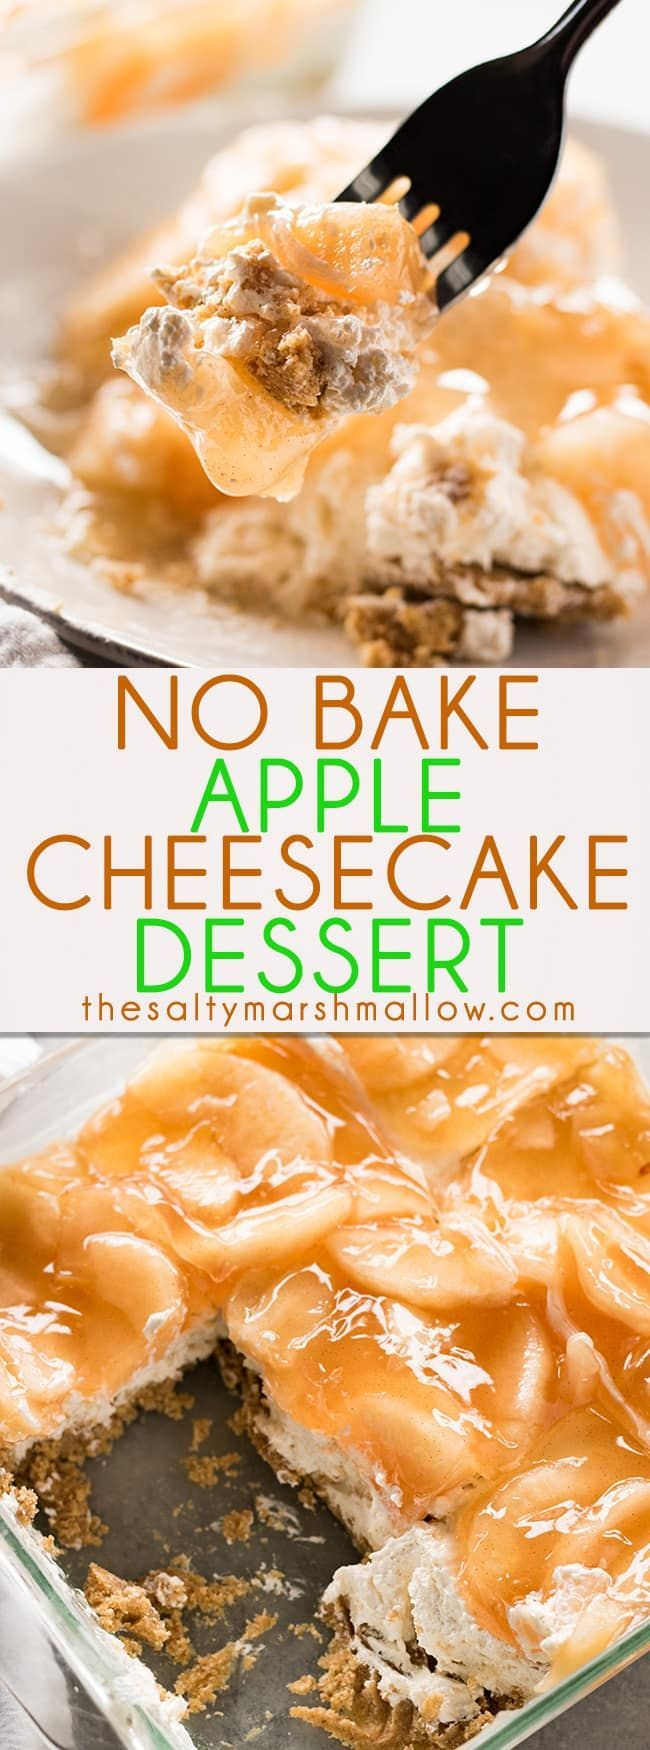 2028 best apple recipes images on pinterest apple for Easy apple dessert recipes with few ingredients